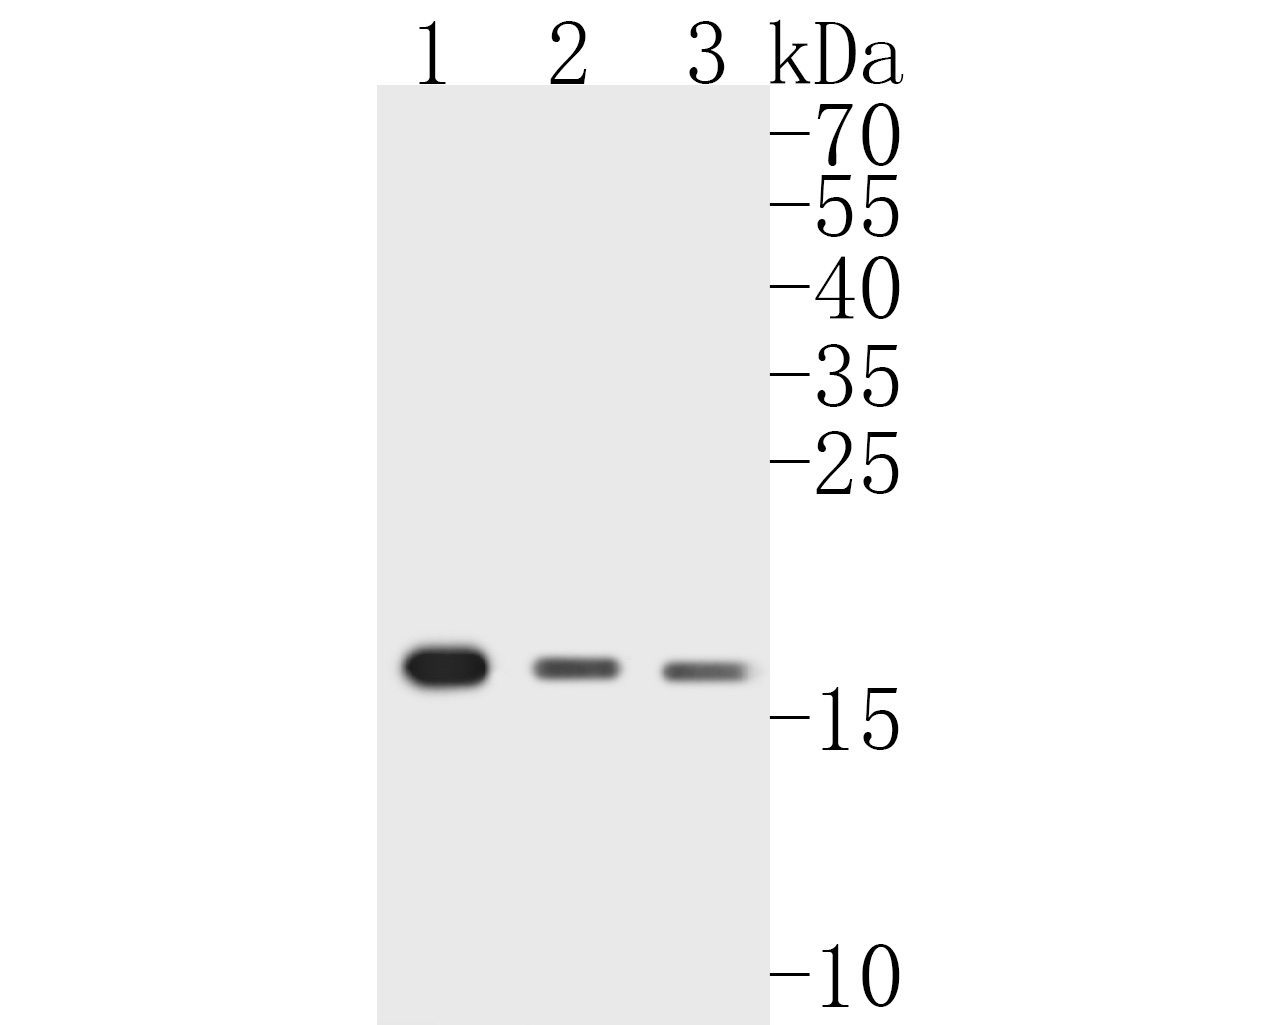 Western blot analysis of CIRP on different lysates. Proteins were transferred to a PVDF membrane and blocked with 5% BSA in PBS for 1 hour at room temperature. The primary antibody (ET7111-15, 1/500) was used in 5% BSA at room temperature for 2 hours. Goat Anti-Rabbit IgG - HRP Secondary Antibody (HA1001) at 1:5,000 dilution was used for 1 hour at room temperature.<br /> Positive control: <br /> Lane 1: Raji cell lysate<br /> Lane 2: Hela cell lysate<br /> Lane 3: Daudi cell lysate